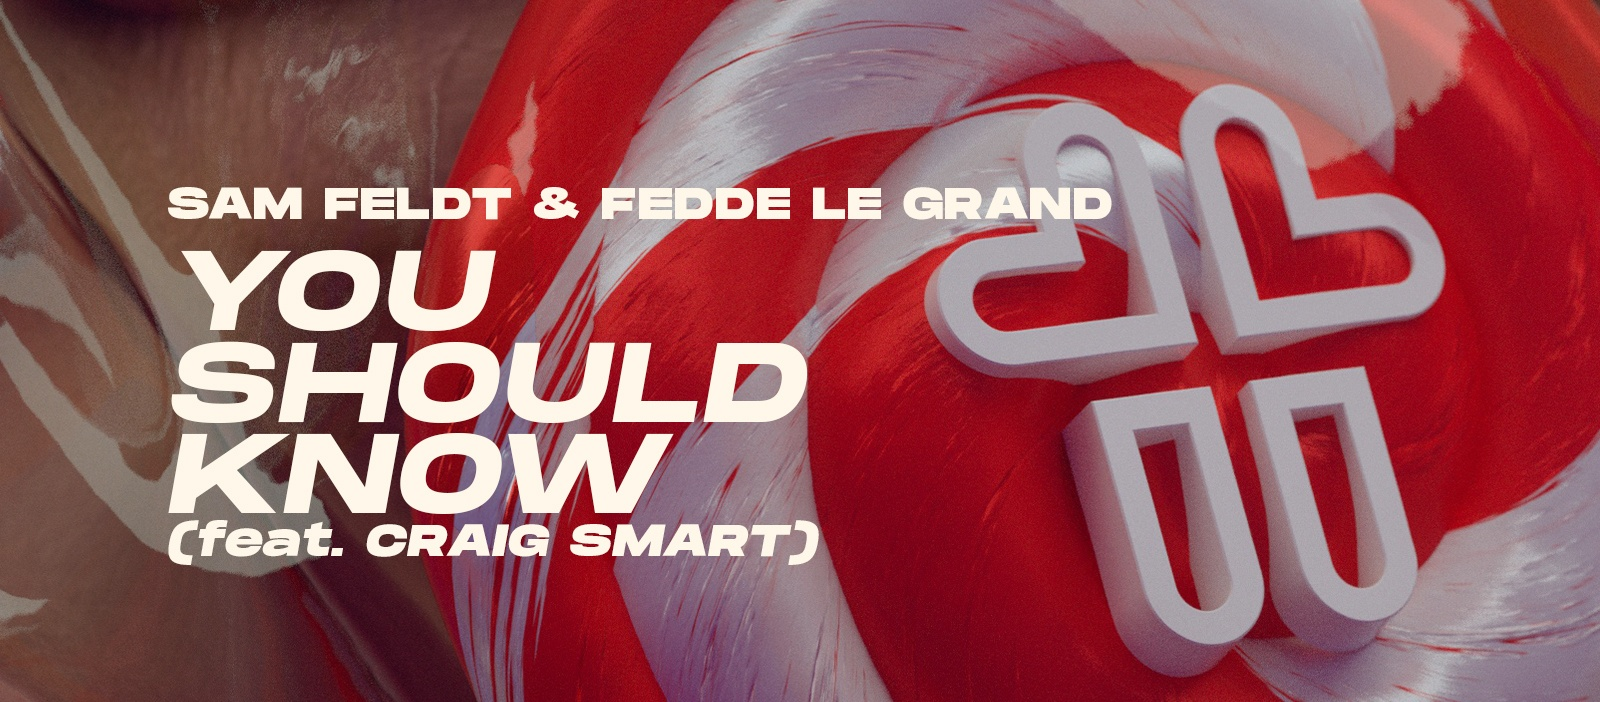 Sam Feldt & Fedde Le Grand - You Should Know (feat. Craig Smart)